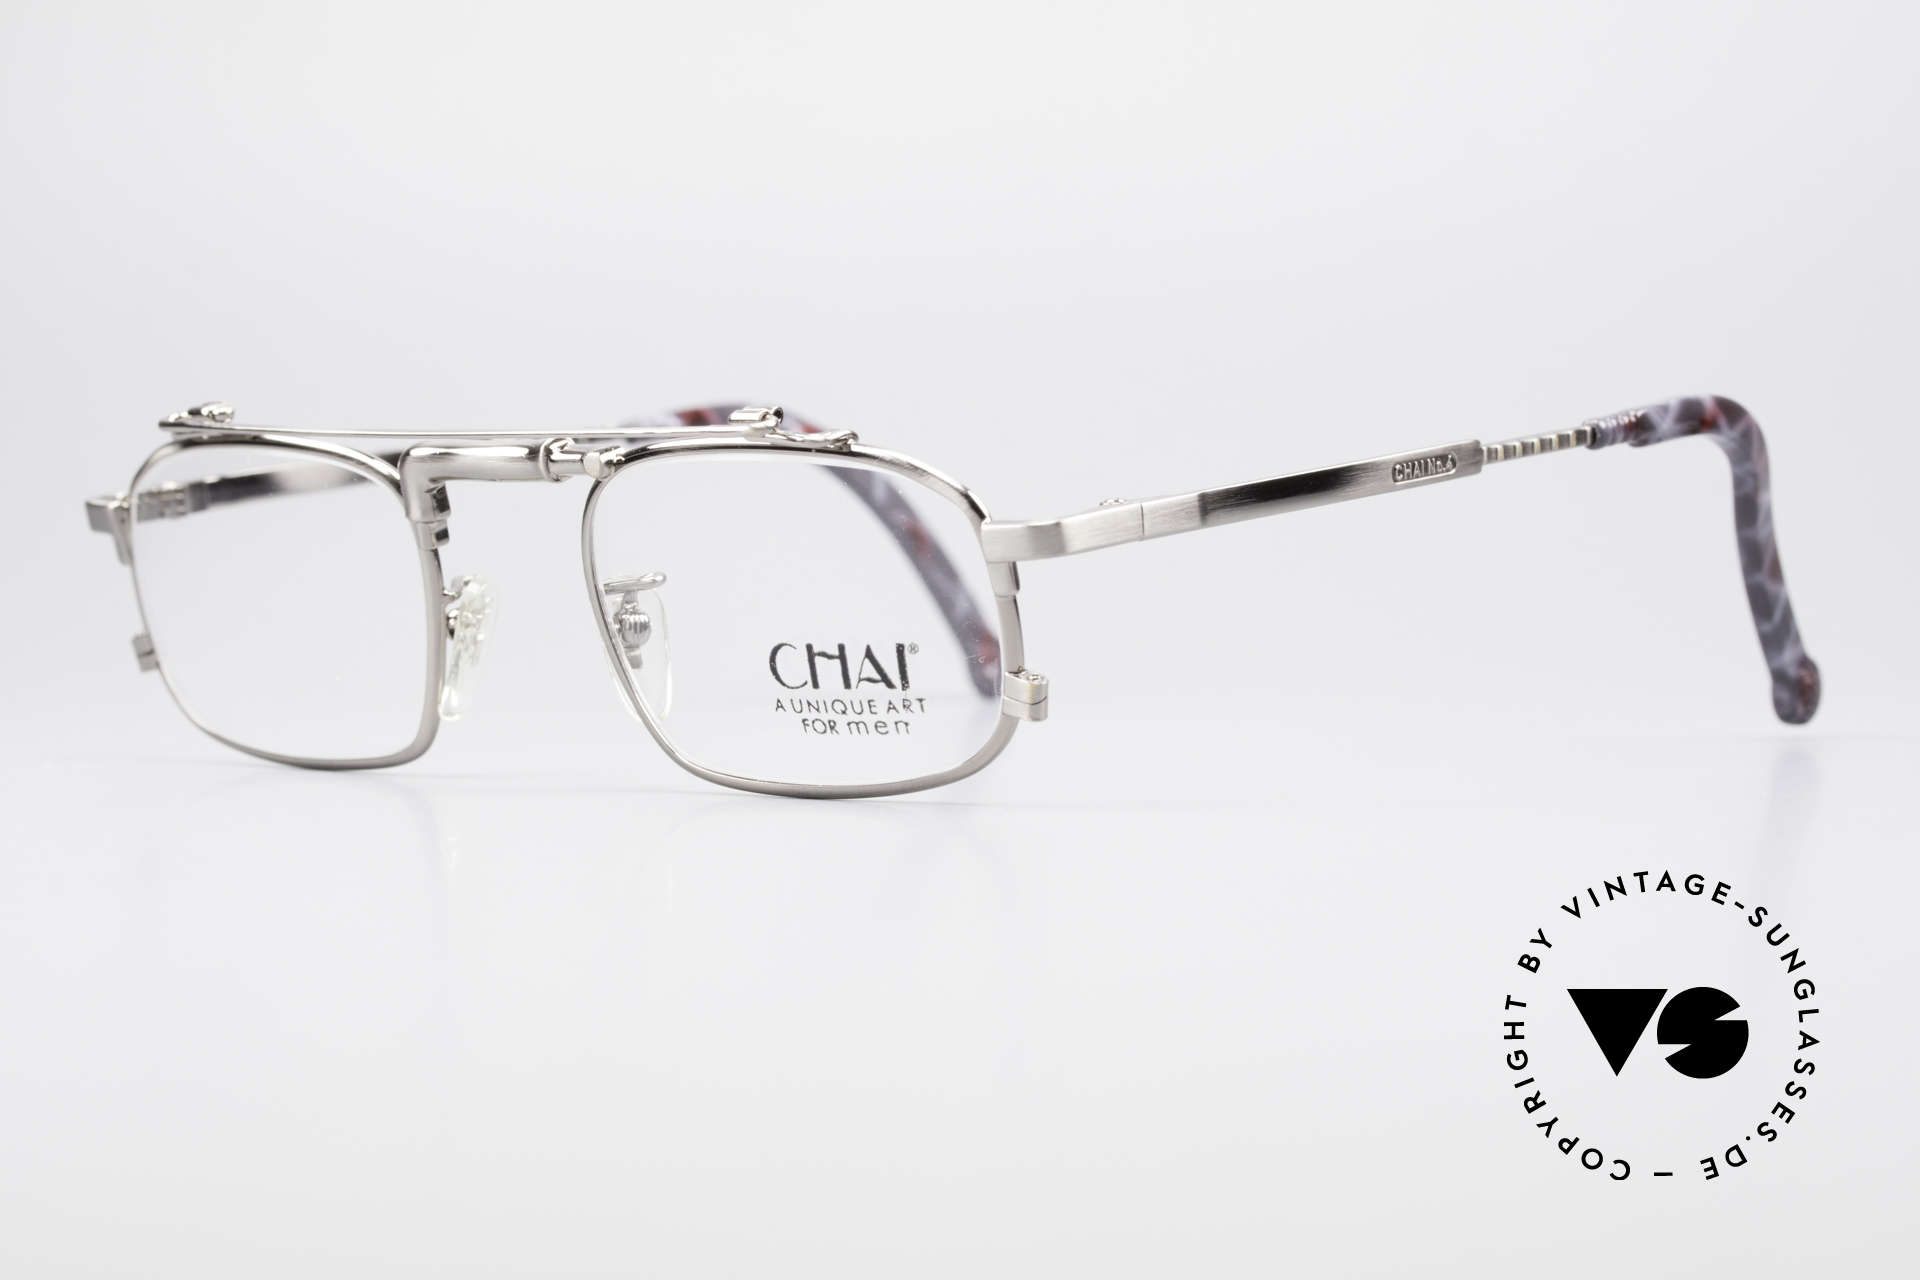 Chai No4 Square Industrial Vintage Eyeglasses, thus, opticans often called this model 'tap glasses', Made for Men and Women